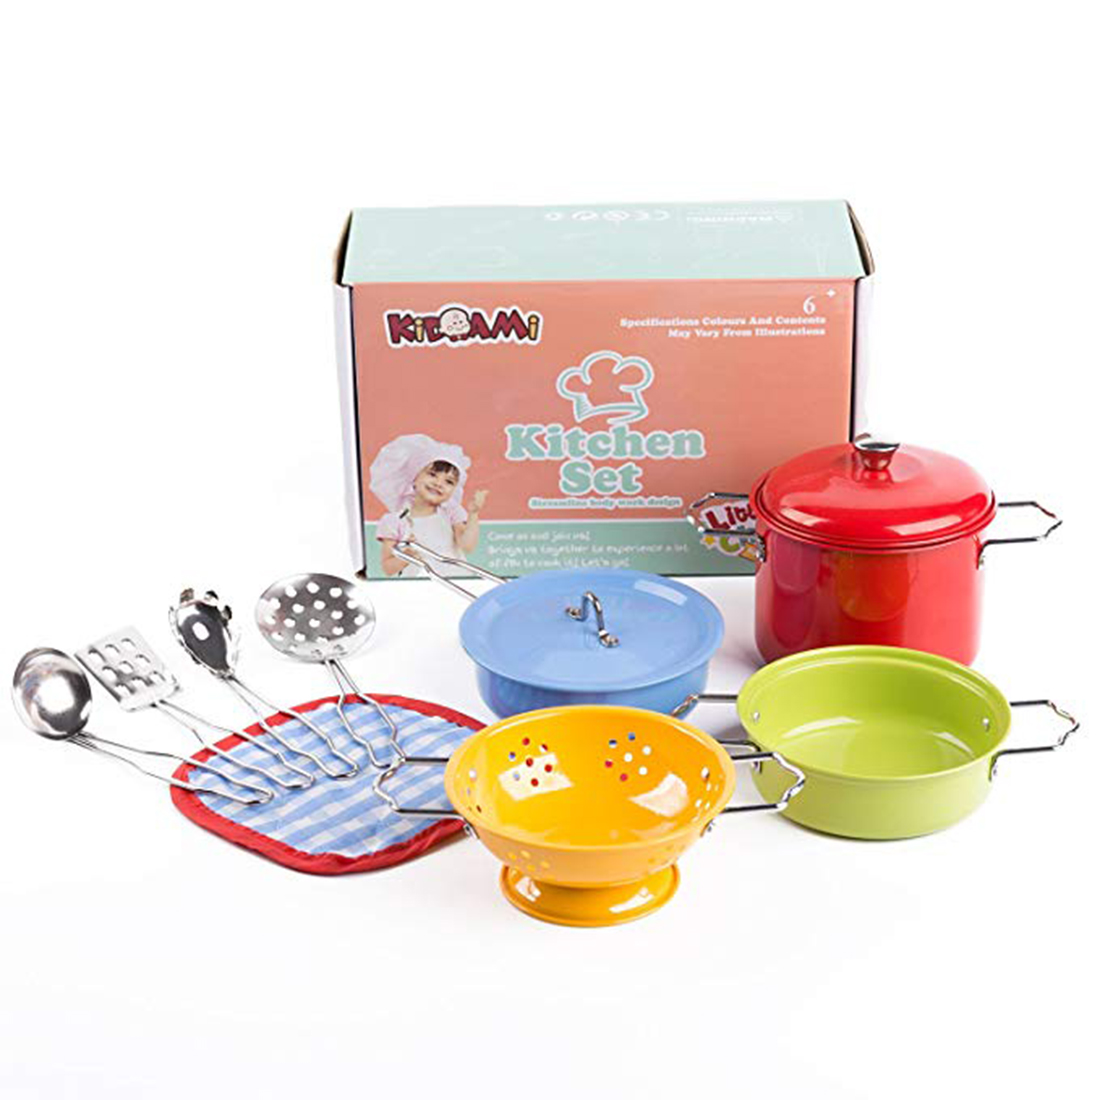 11pcs Colorful Kitchen Toy Set Utensils Cooking Pots Pans Food Dishes Mini Simulation Kids Cookware Pretend Play Toys Kitchen Toys Aliexpress